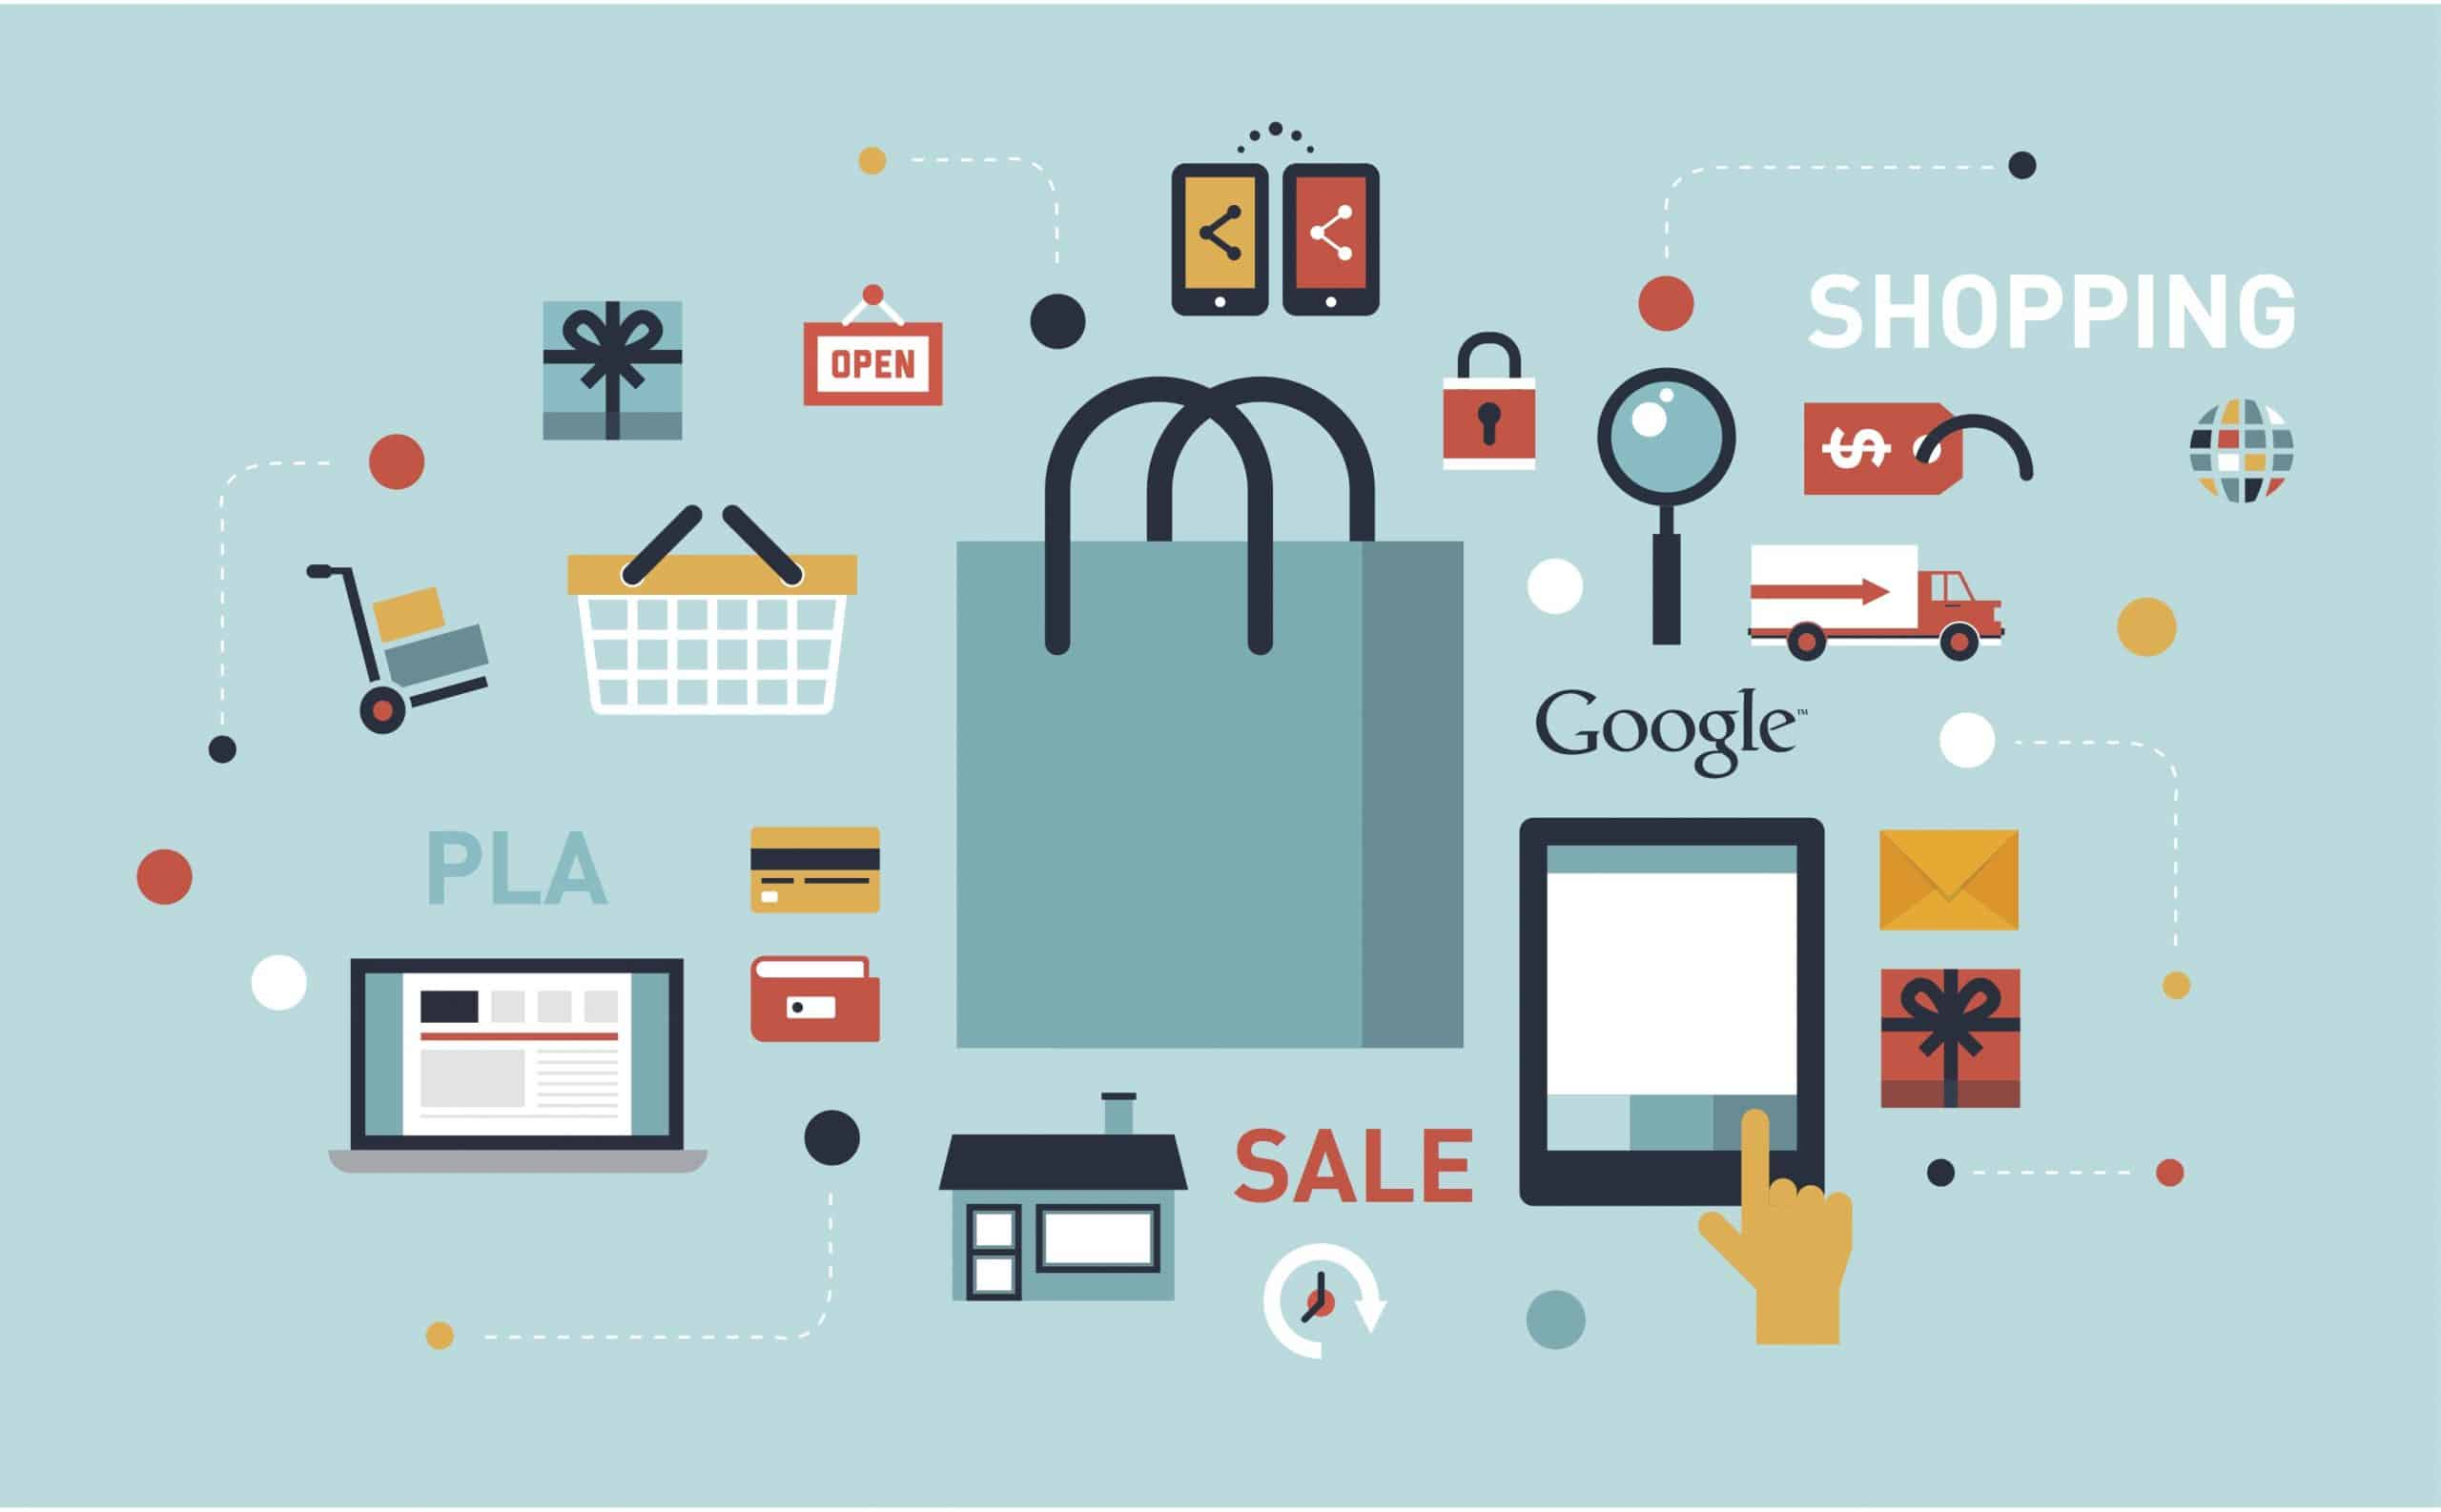 3 Essential Tools to Succeed With Google Shopping Campaigns